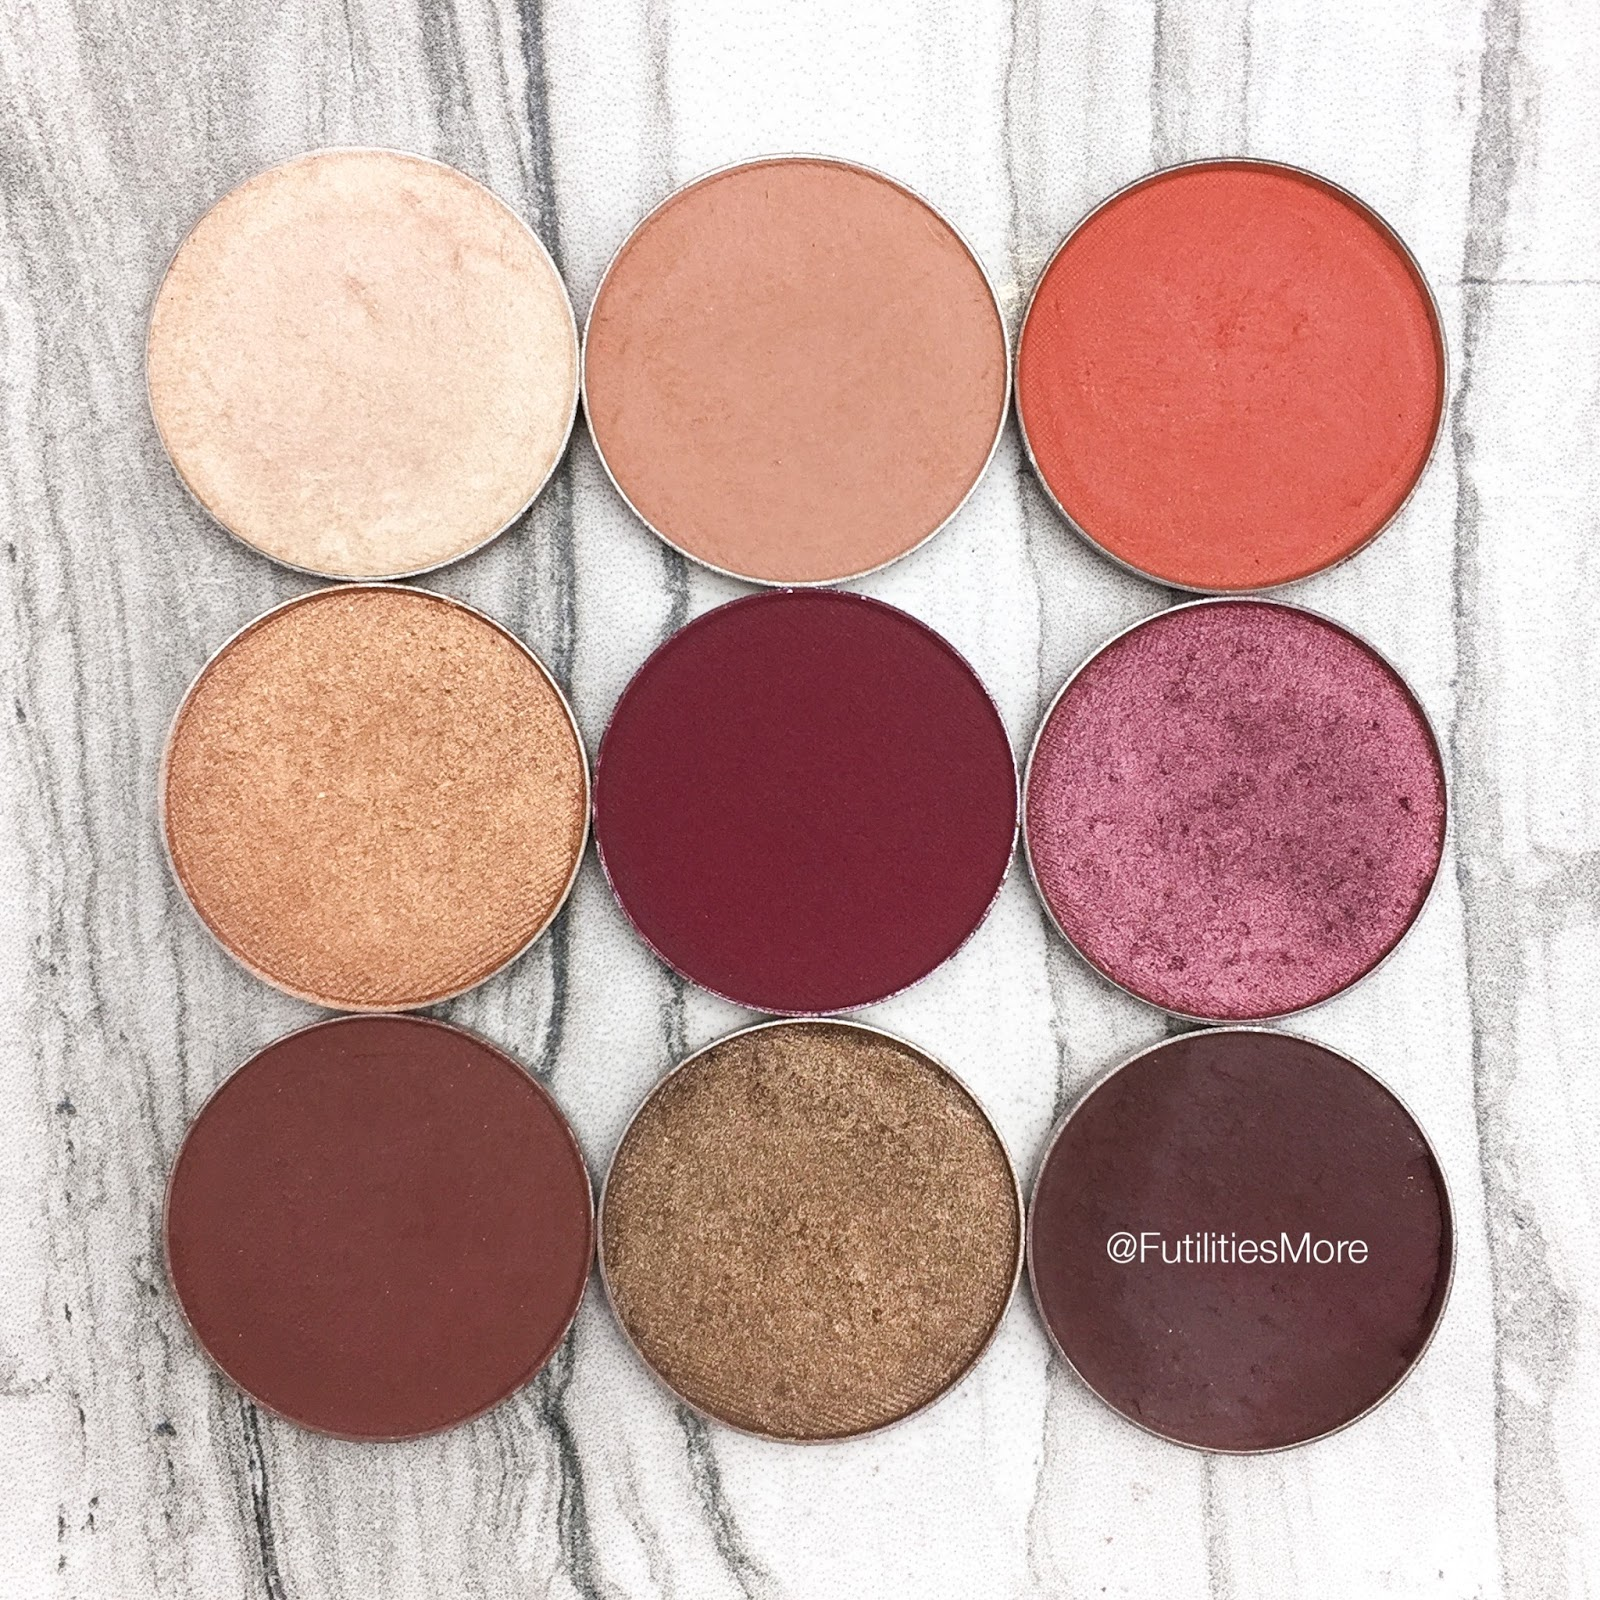 Kylie Cosmetics Burgundy Palette Dupes with Makeup Geek Cosmetics, Pictures and Swatches